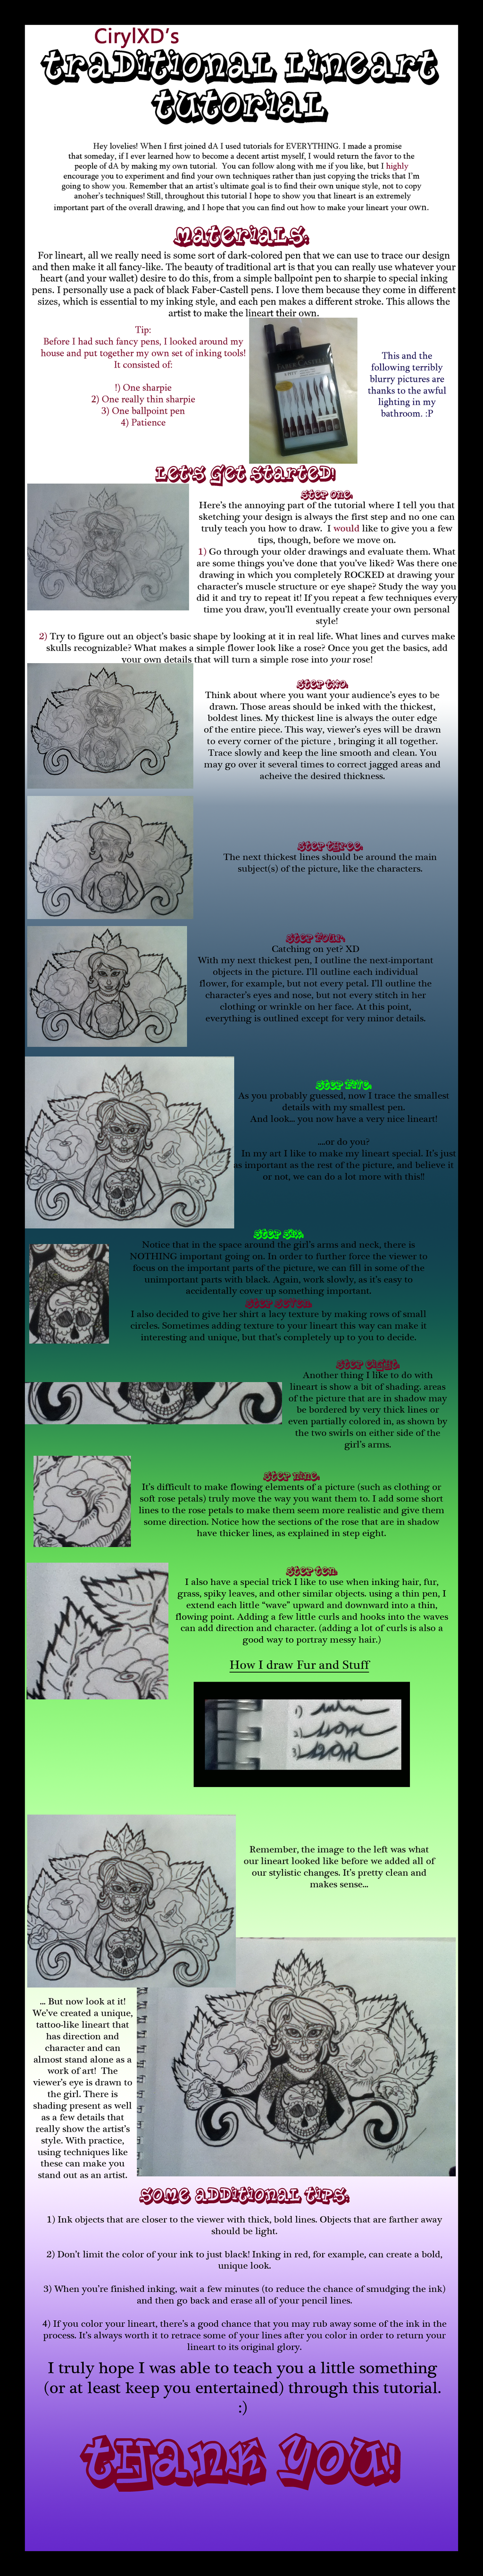 Traditional lineart tutorial by cirylxd on deviantart traditional lineart tutorial by cirylxd traditional lineart tutorial by cirylxd baditri Gallery